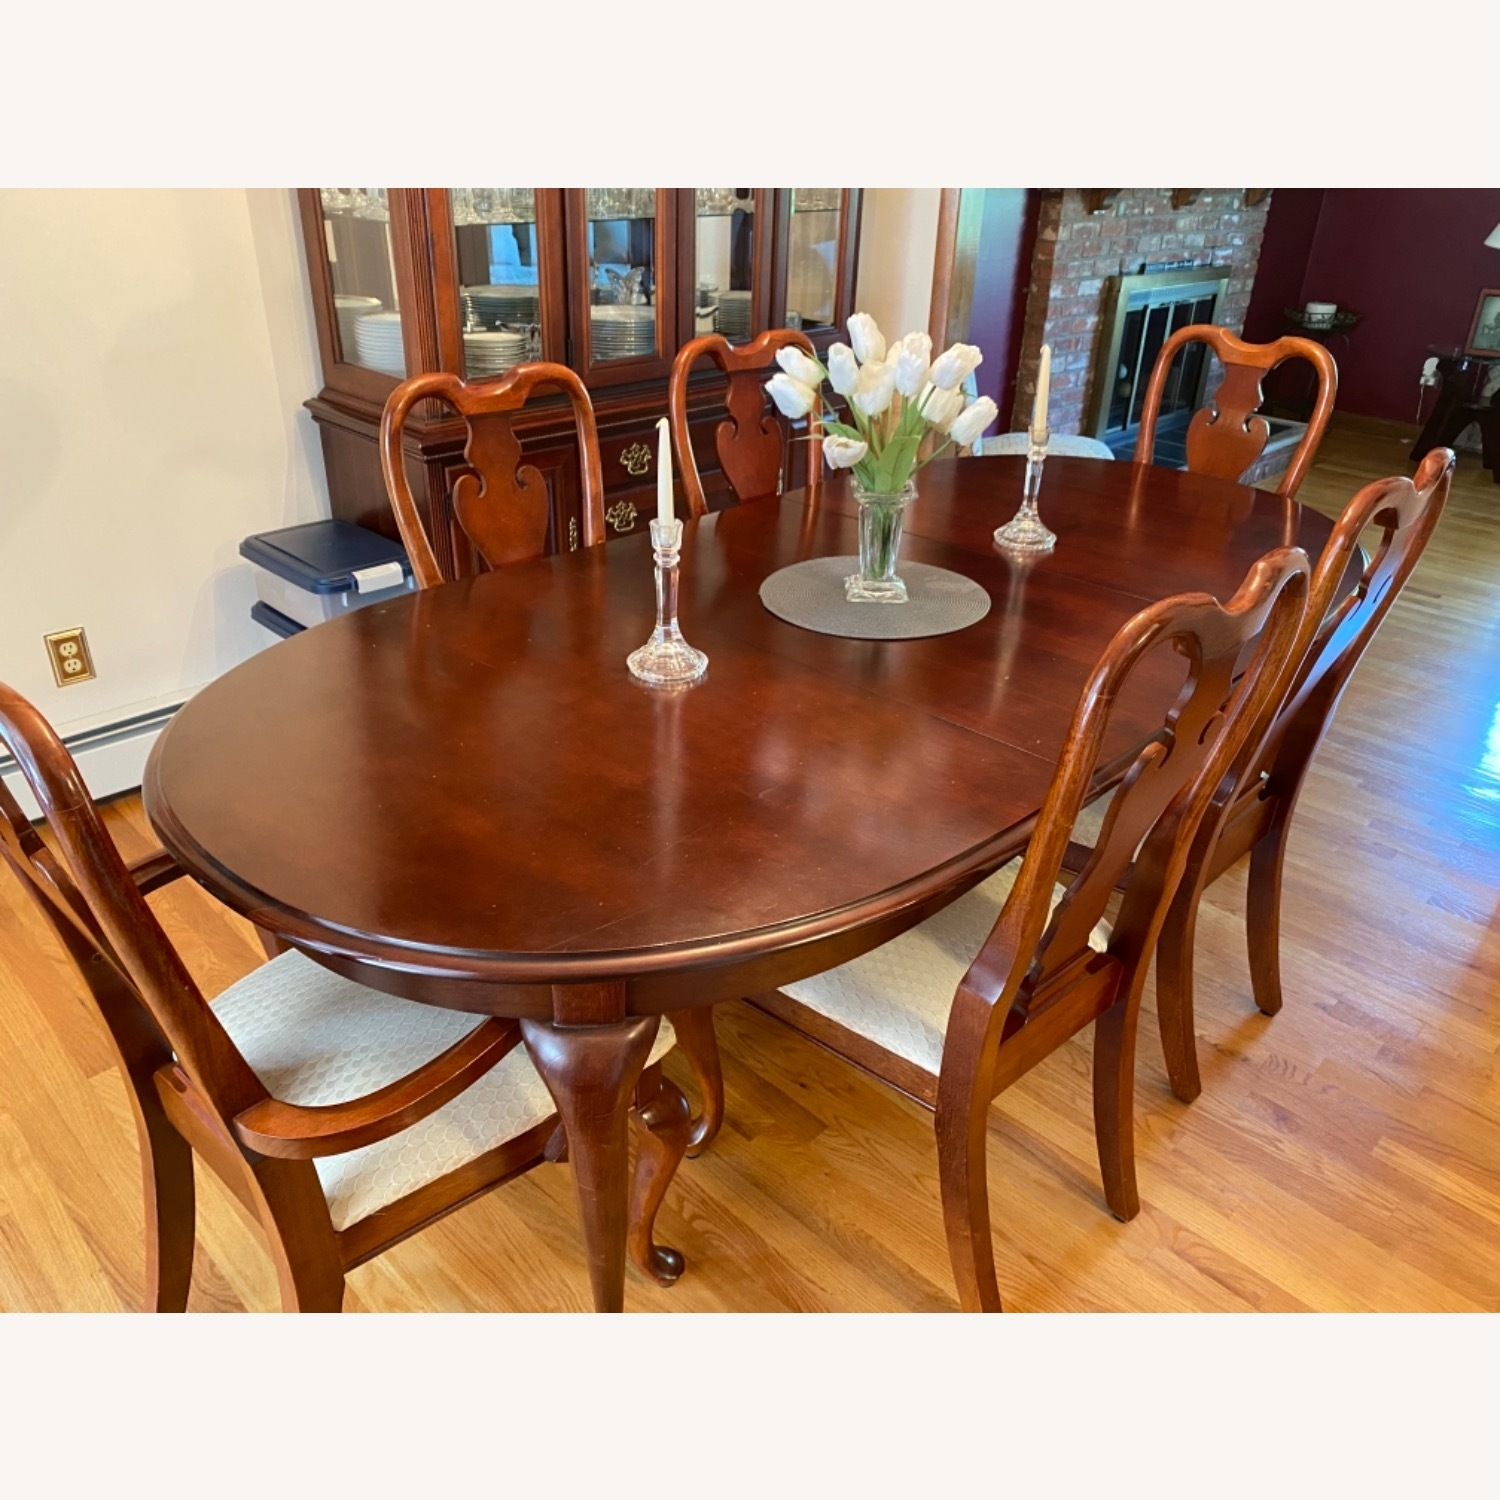 American Drew Dining Table Set - image-1